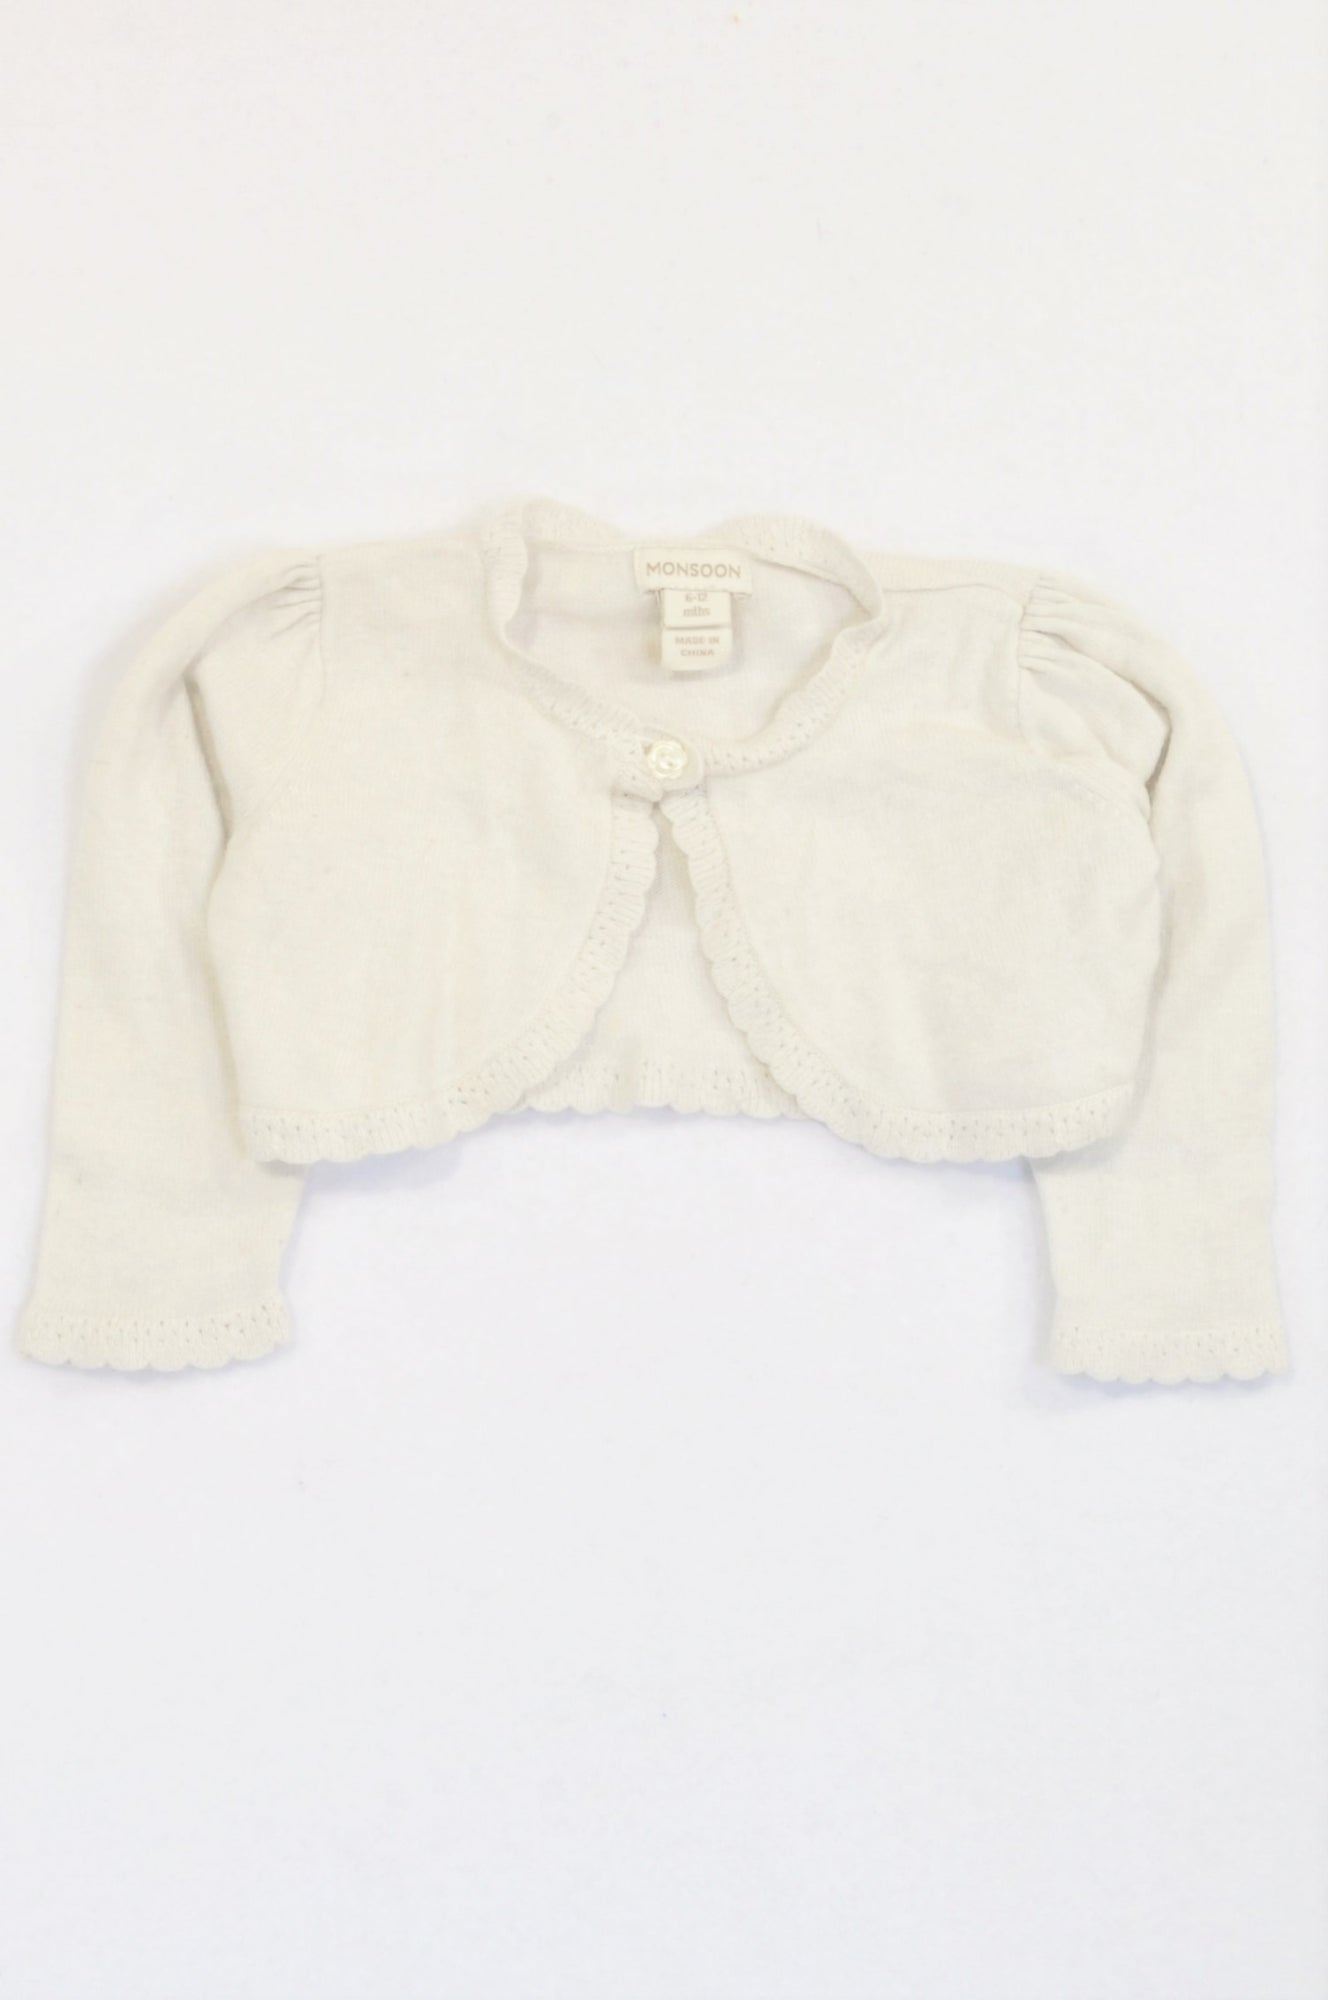 Monsoon White One Button Scalloped Cardigan Girls 6-12 months